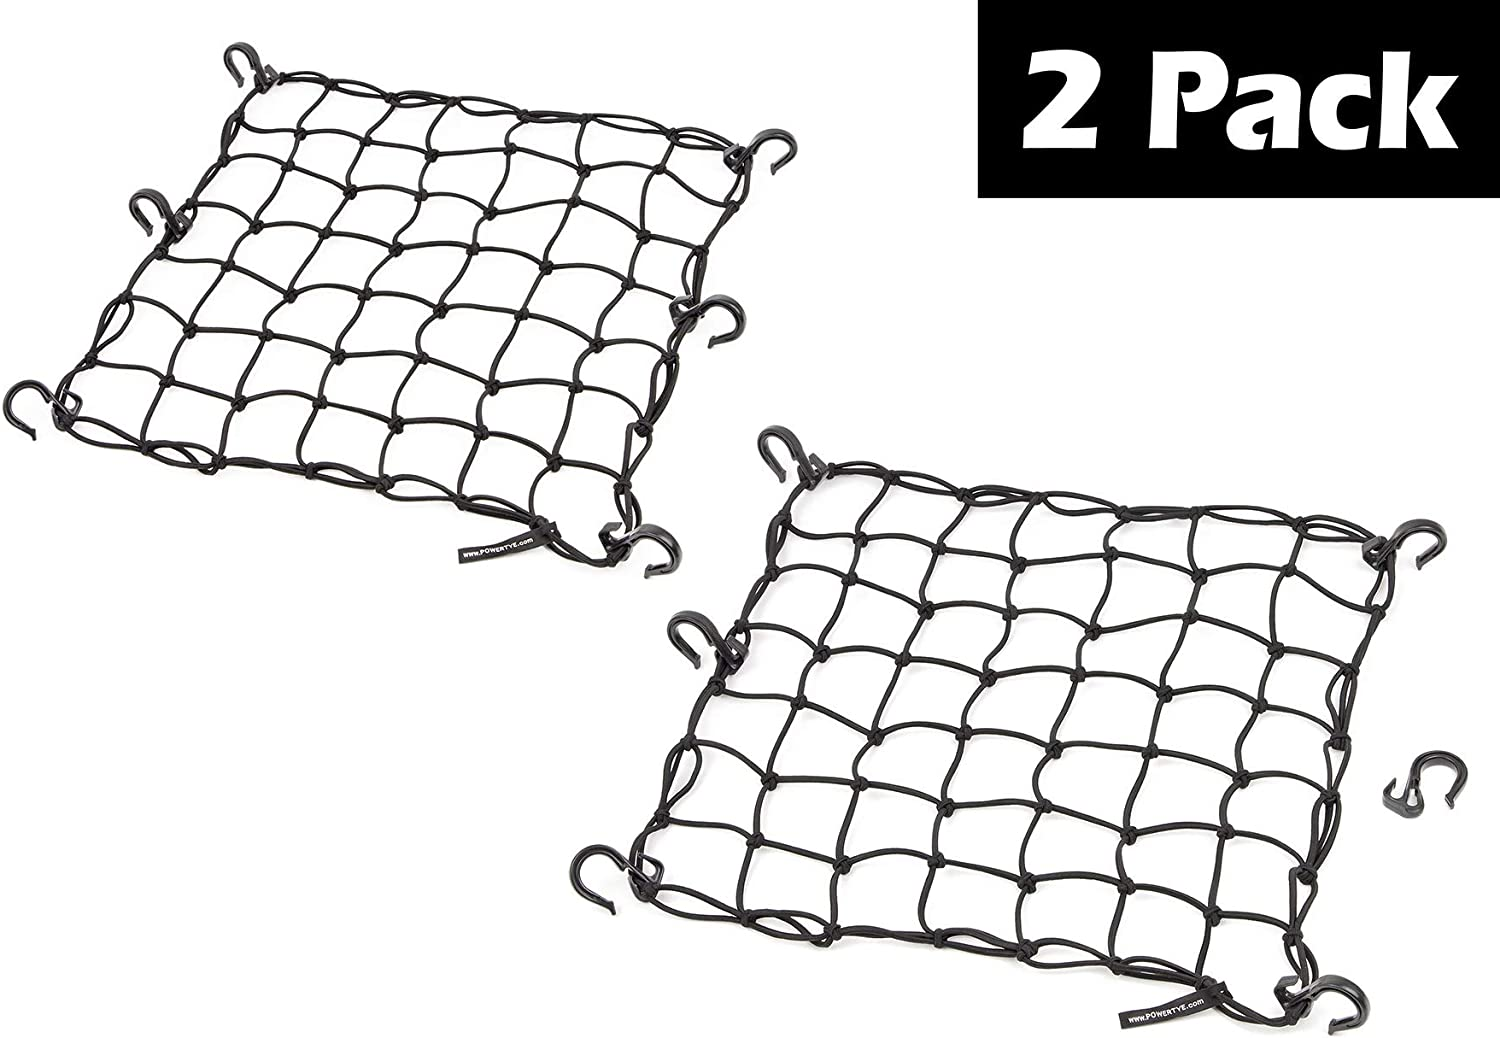 PowerTye Black Mesh Cargo Net (2 Pack)